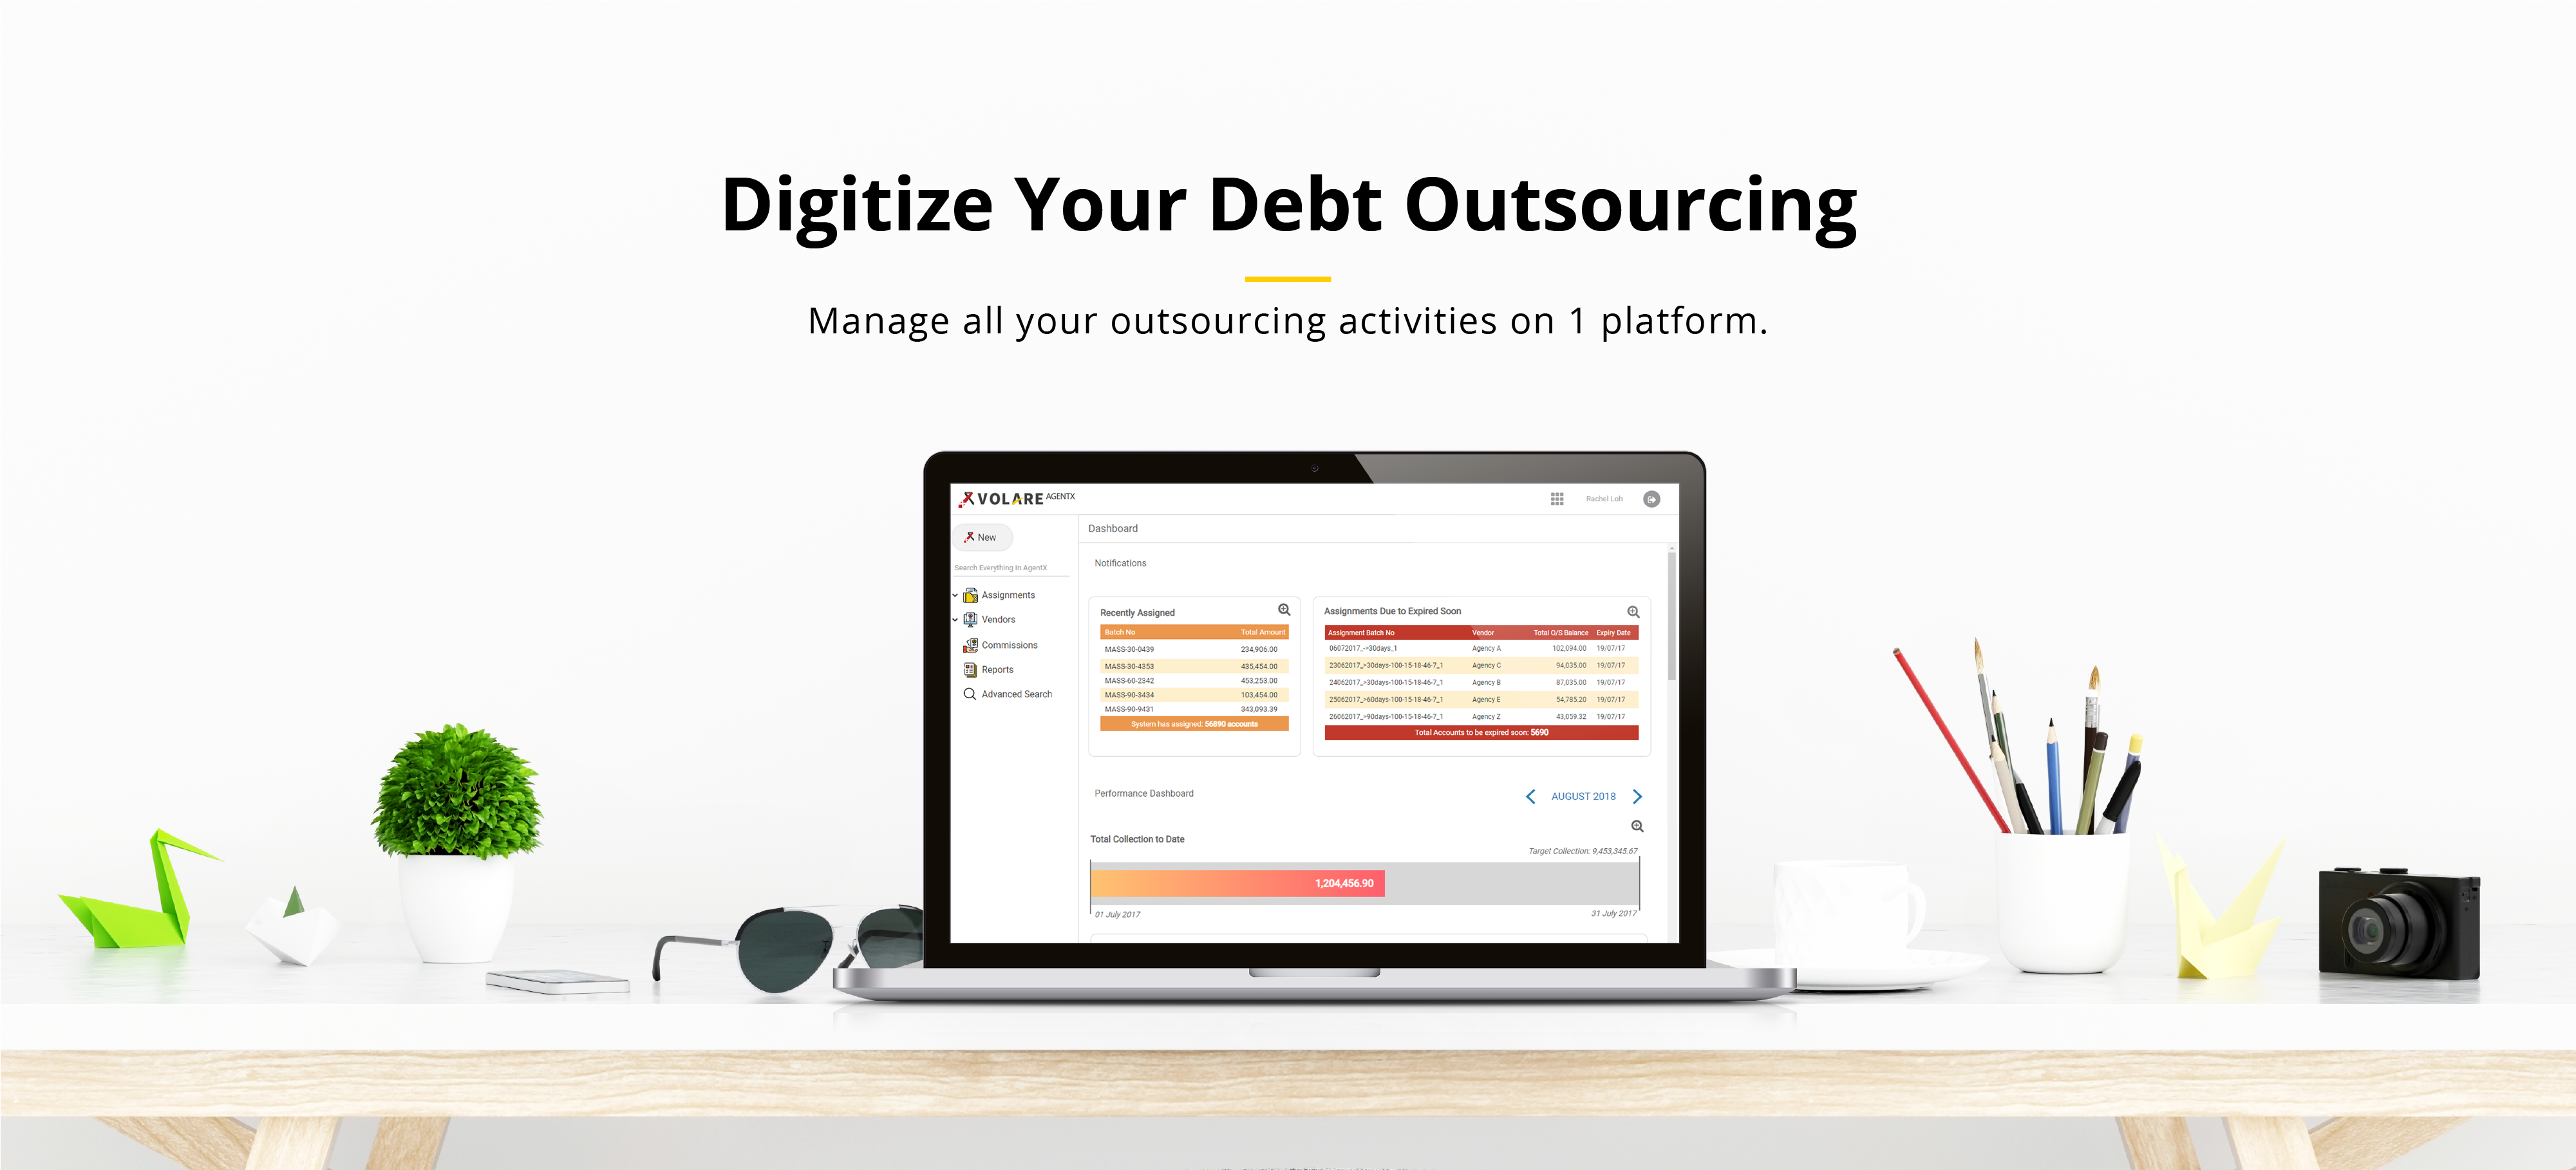 Digitize Your Debt Outsourcing